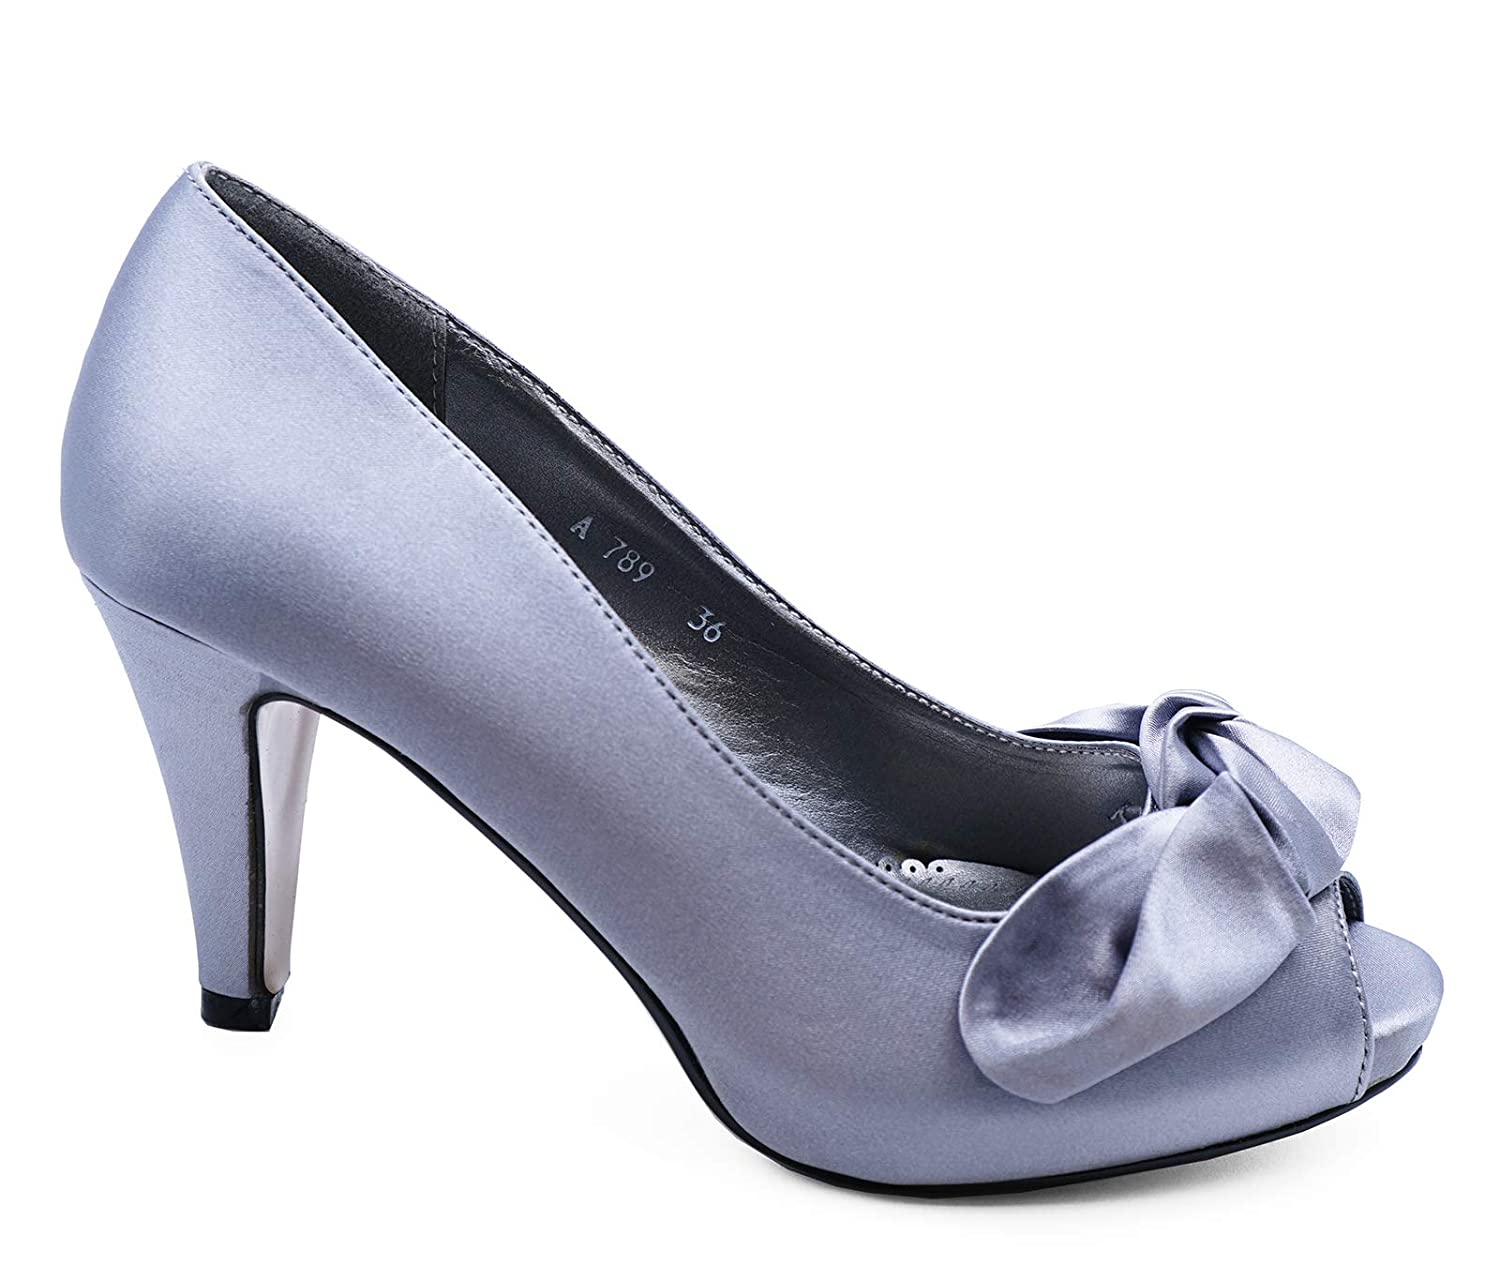 LADIES PURPLE SLIP-ON SATIN PEEP-TOE PARTY BOW EVENING PROM COURT SHOES SIZE 3-8